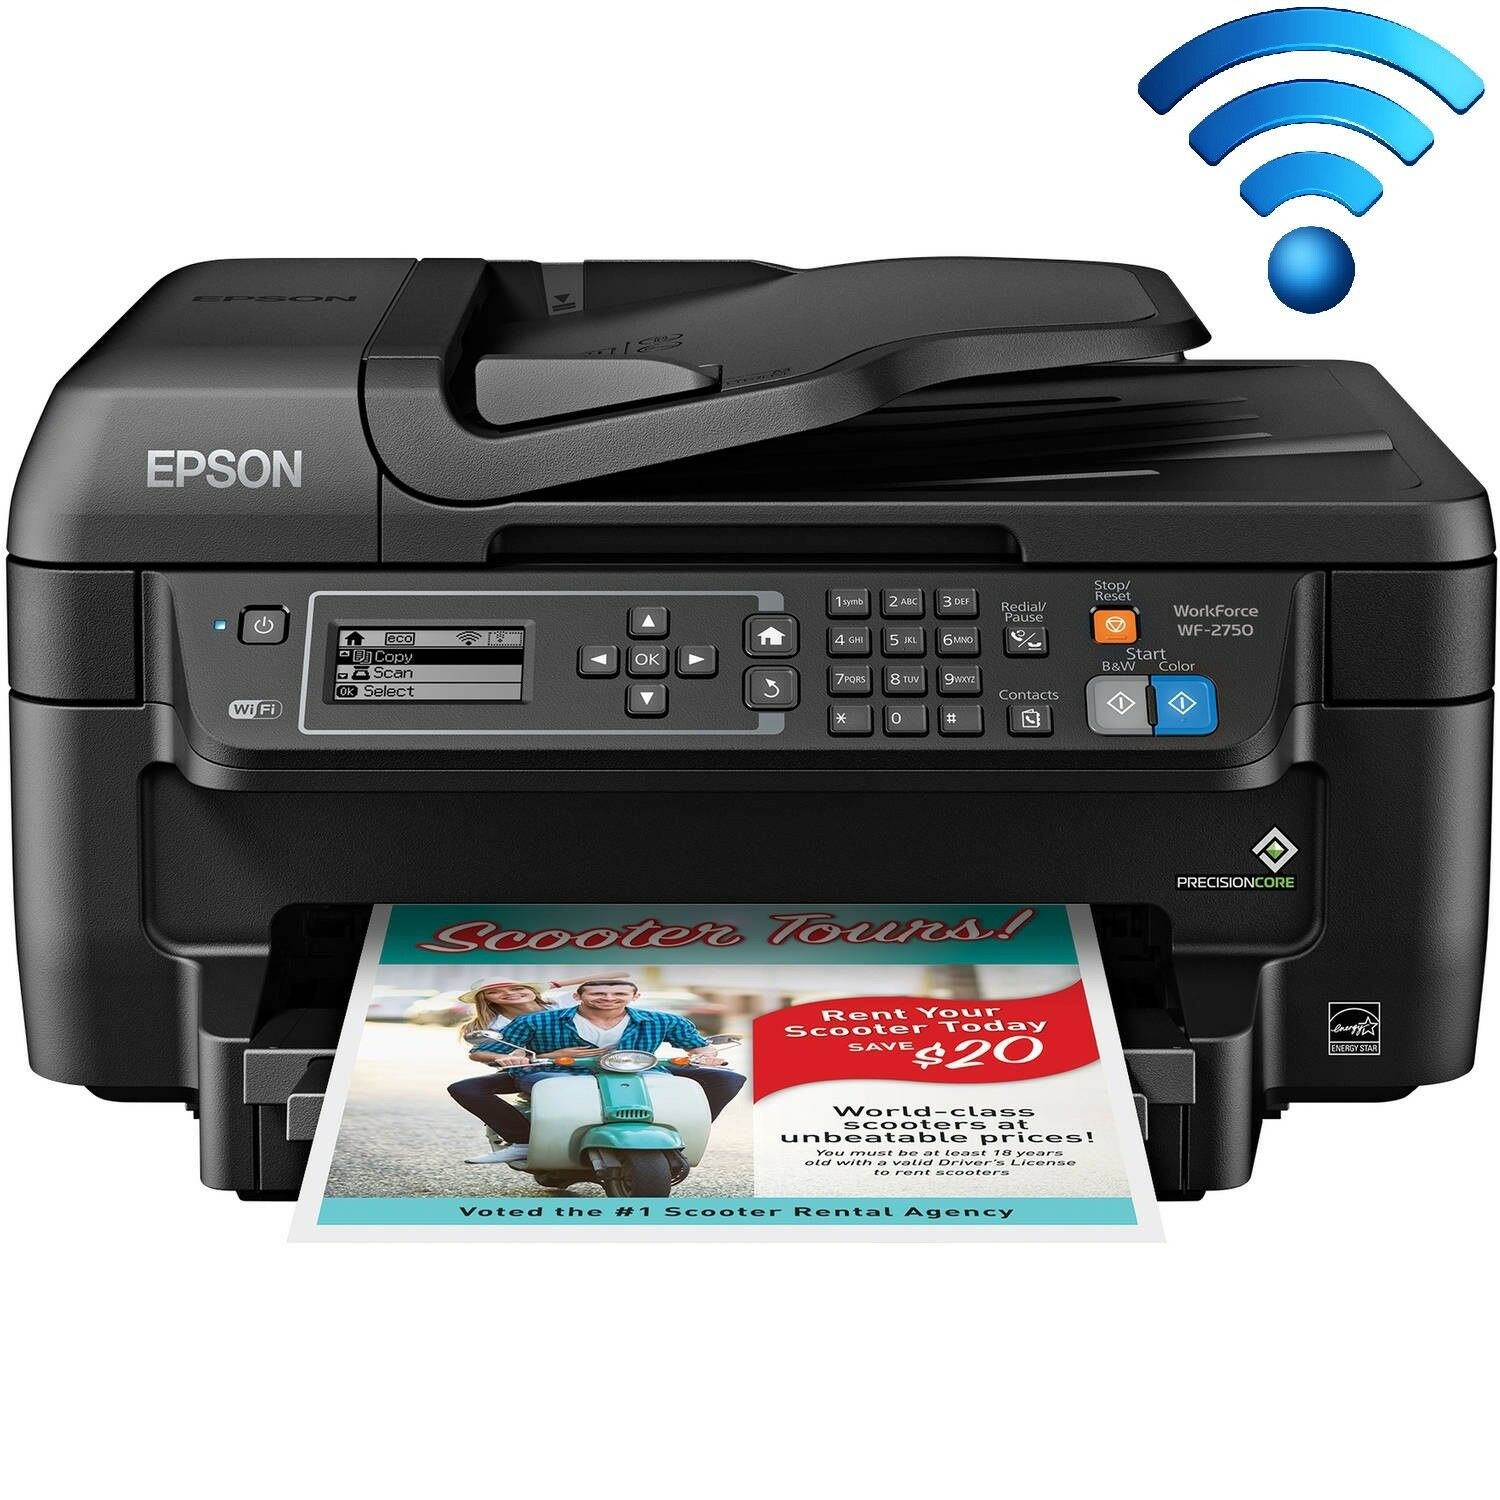 Epson Printer Machine Fax Scanner Copier All-In-One Wireless